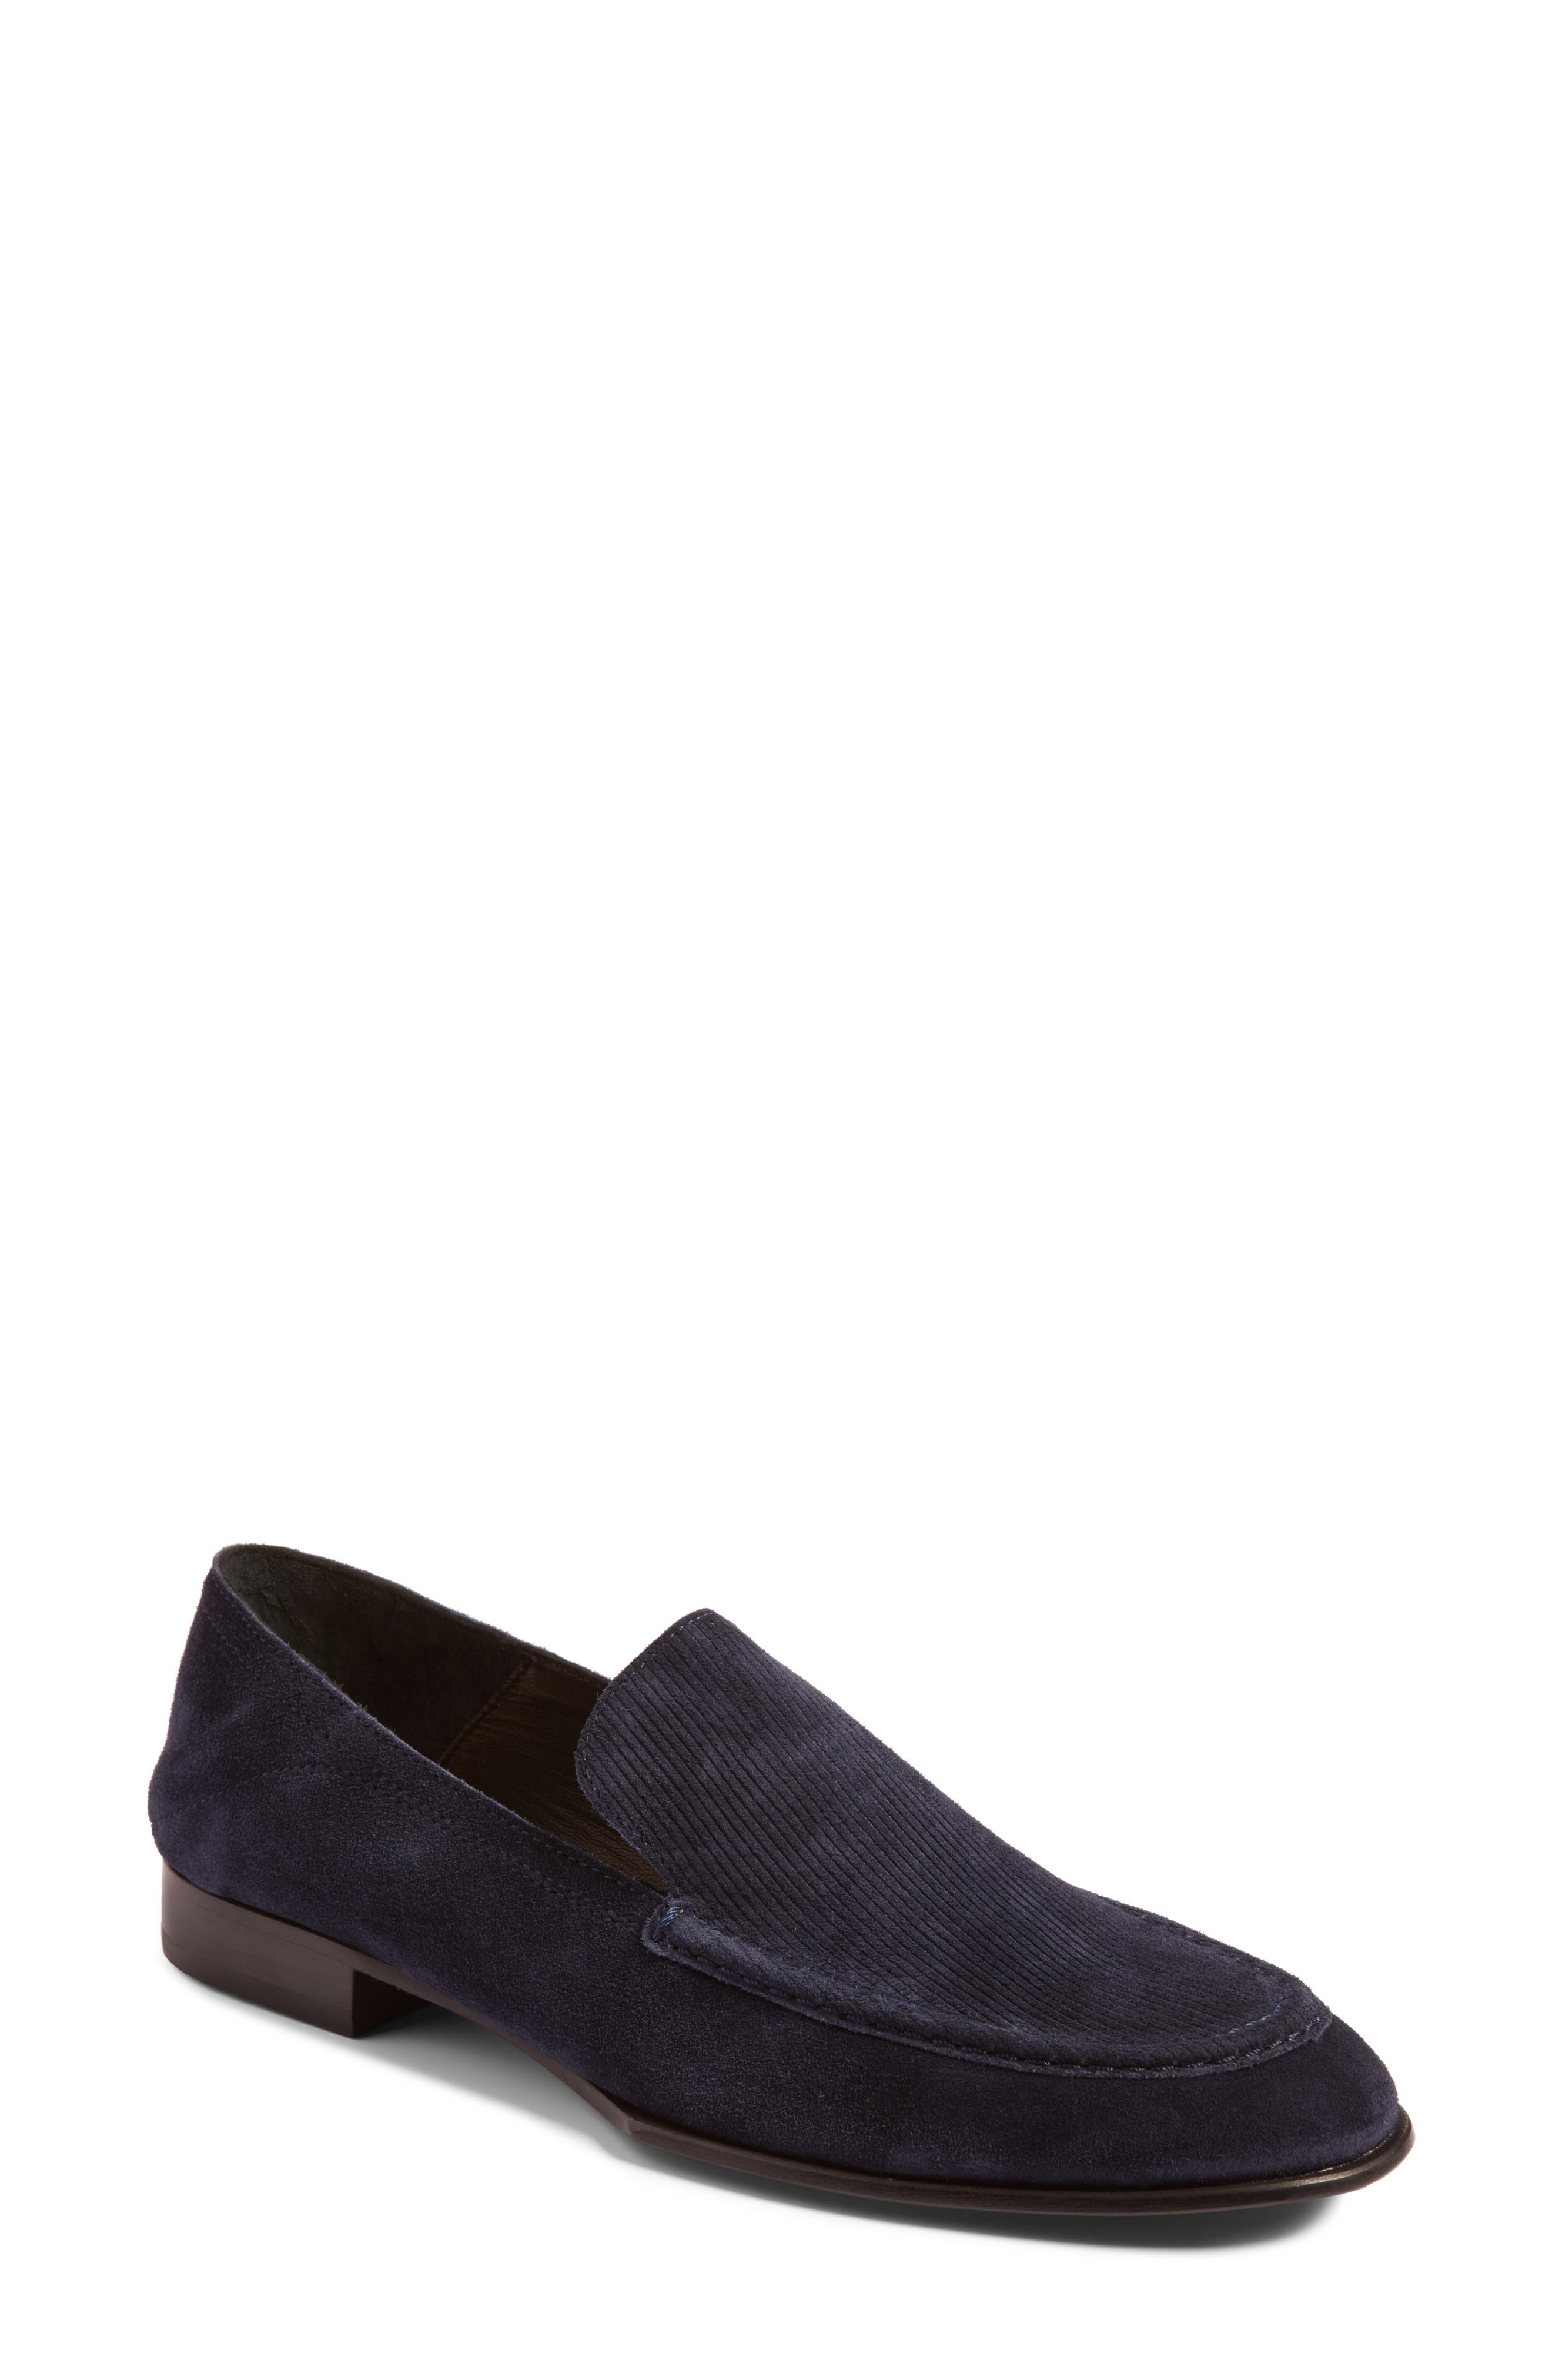 Alix Convertible Loafer,                         Main,                         color, Navy Suede